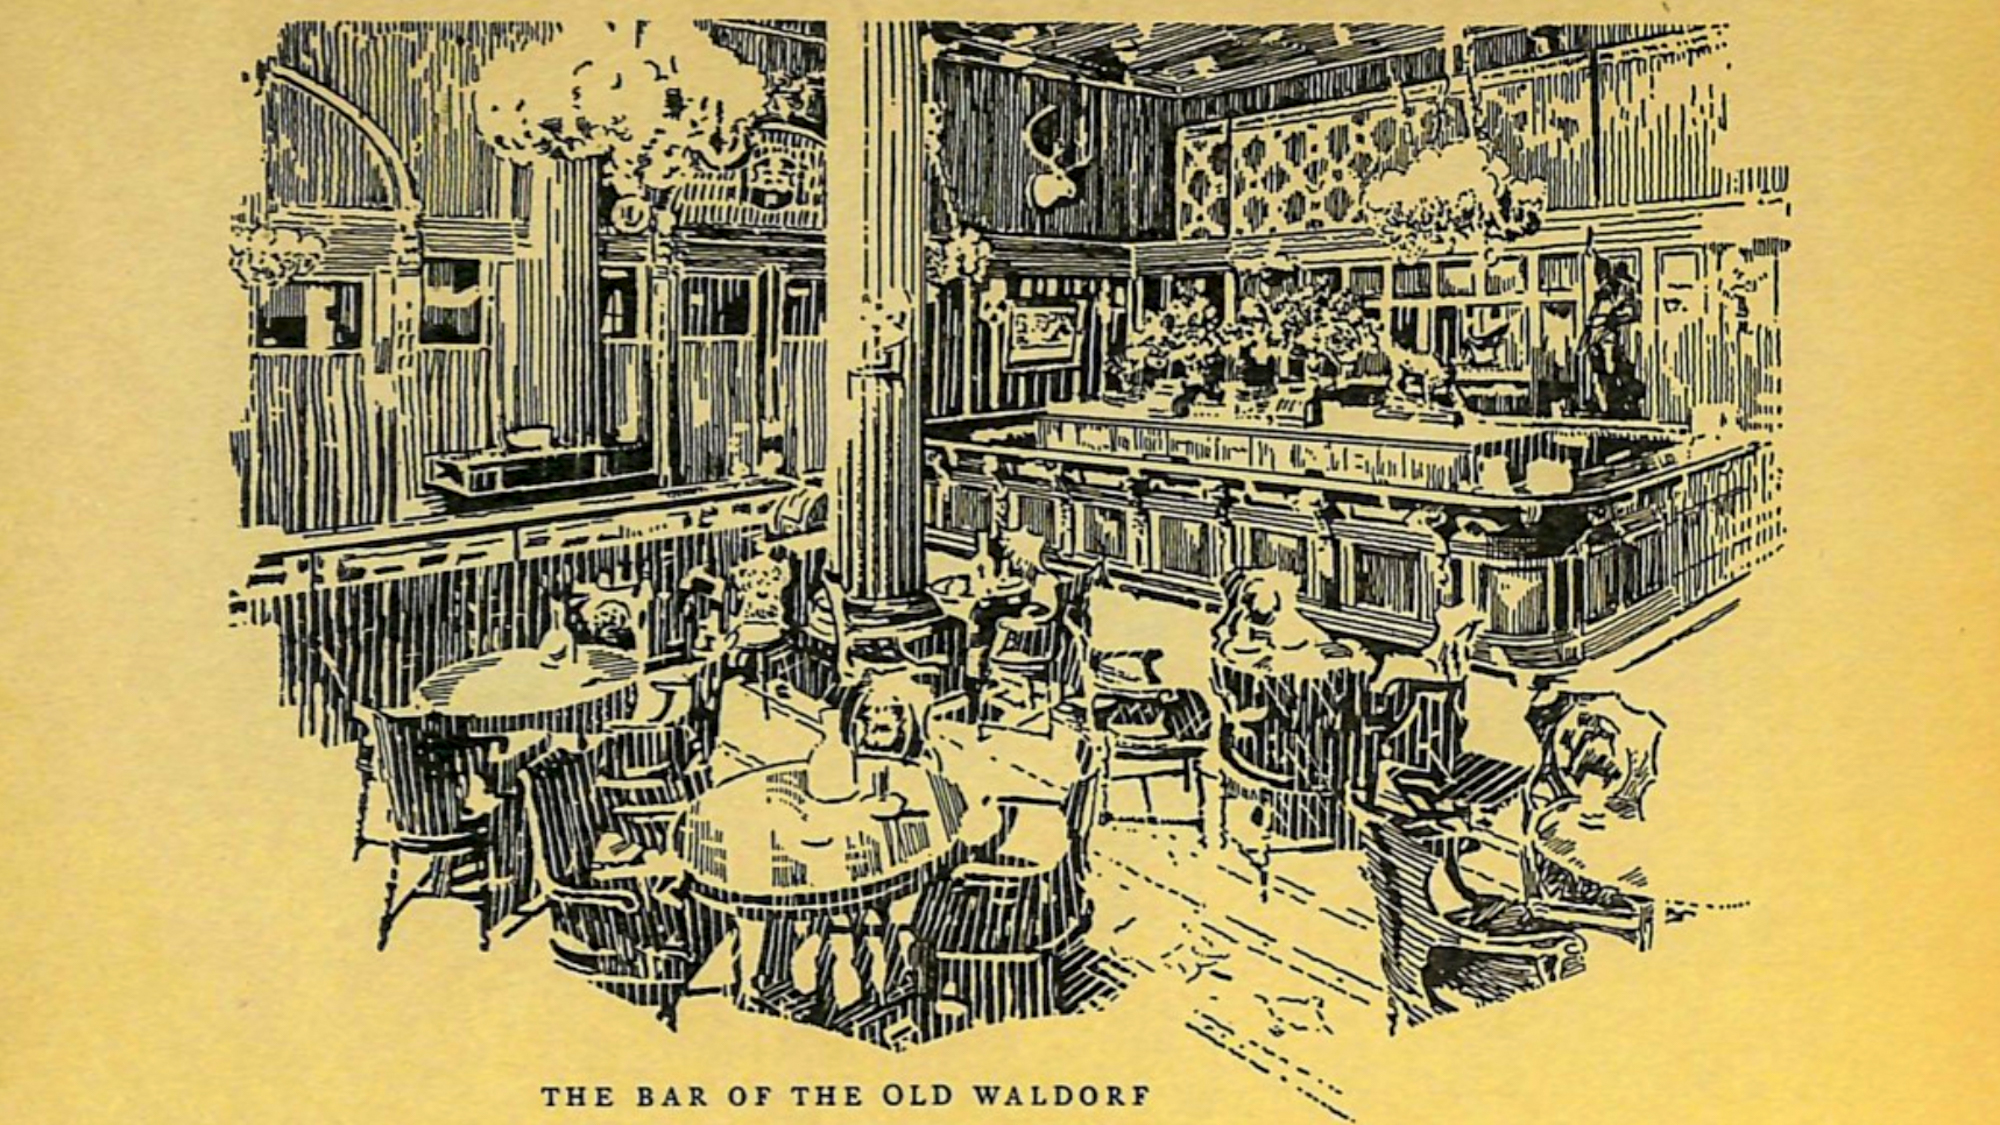 The bar of the old Waldorf hotel